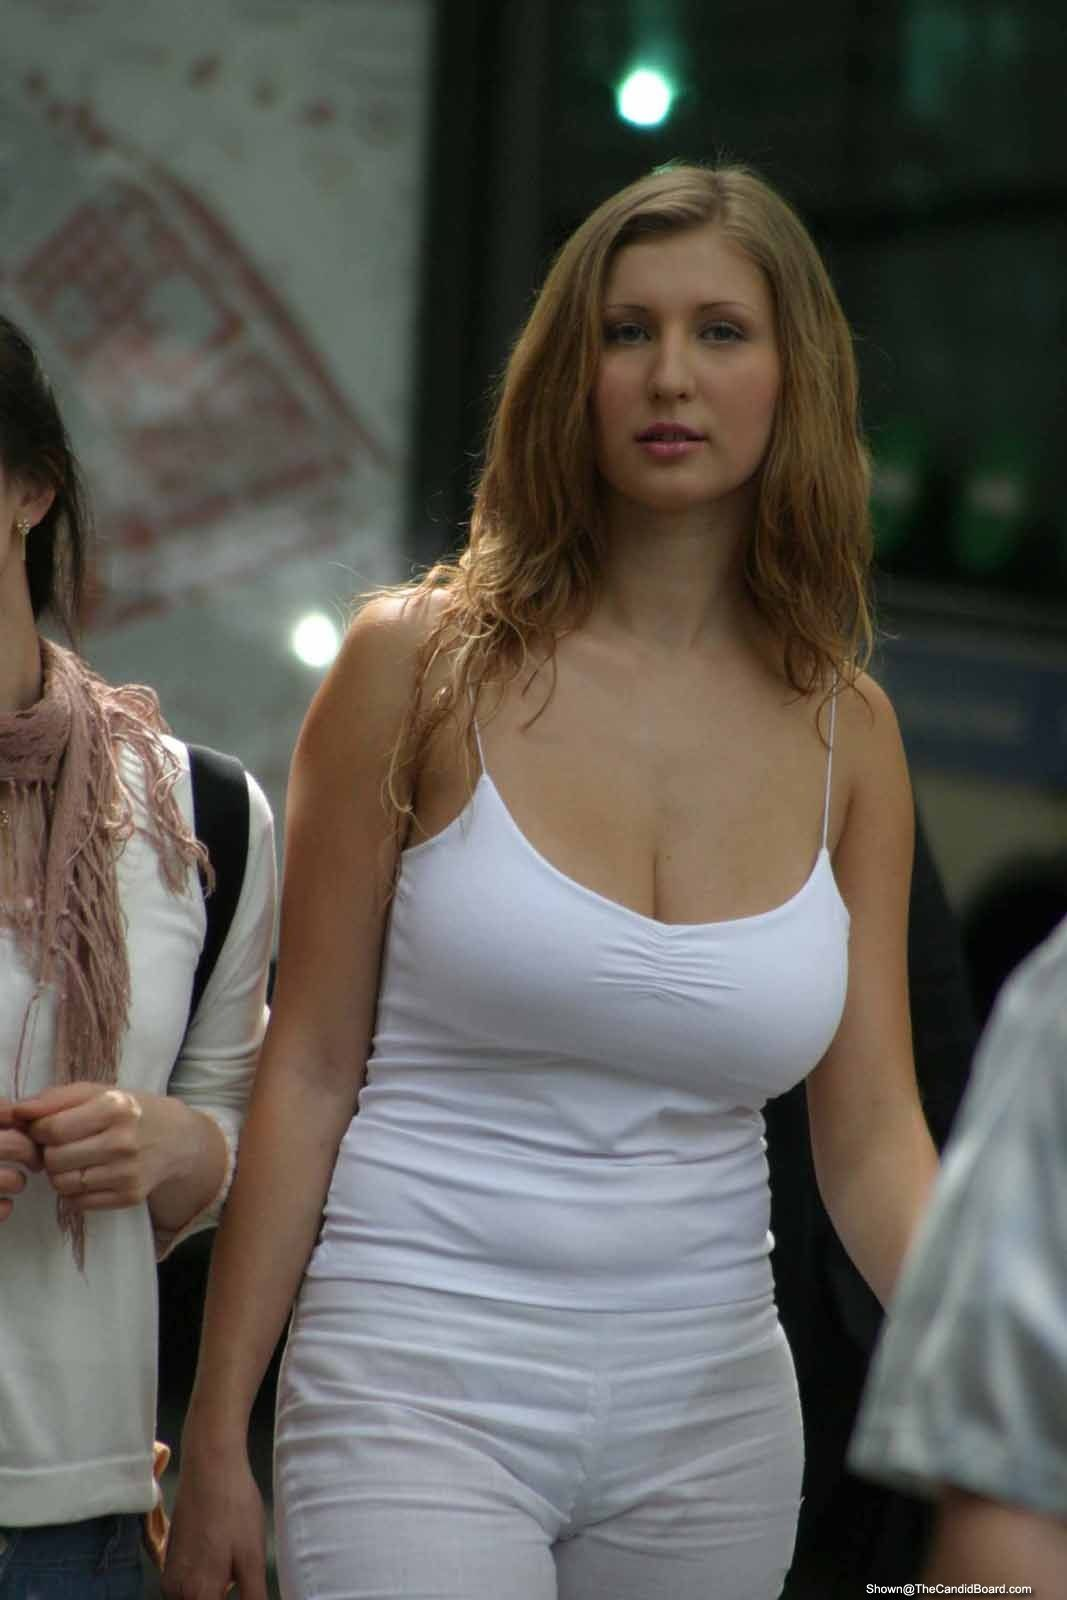 Candid pictures of huge breasts